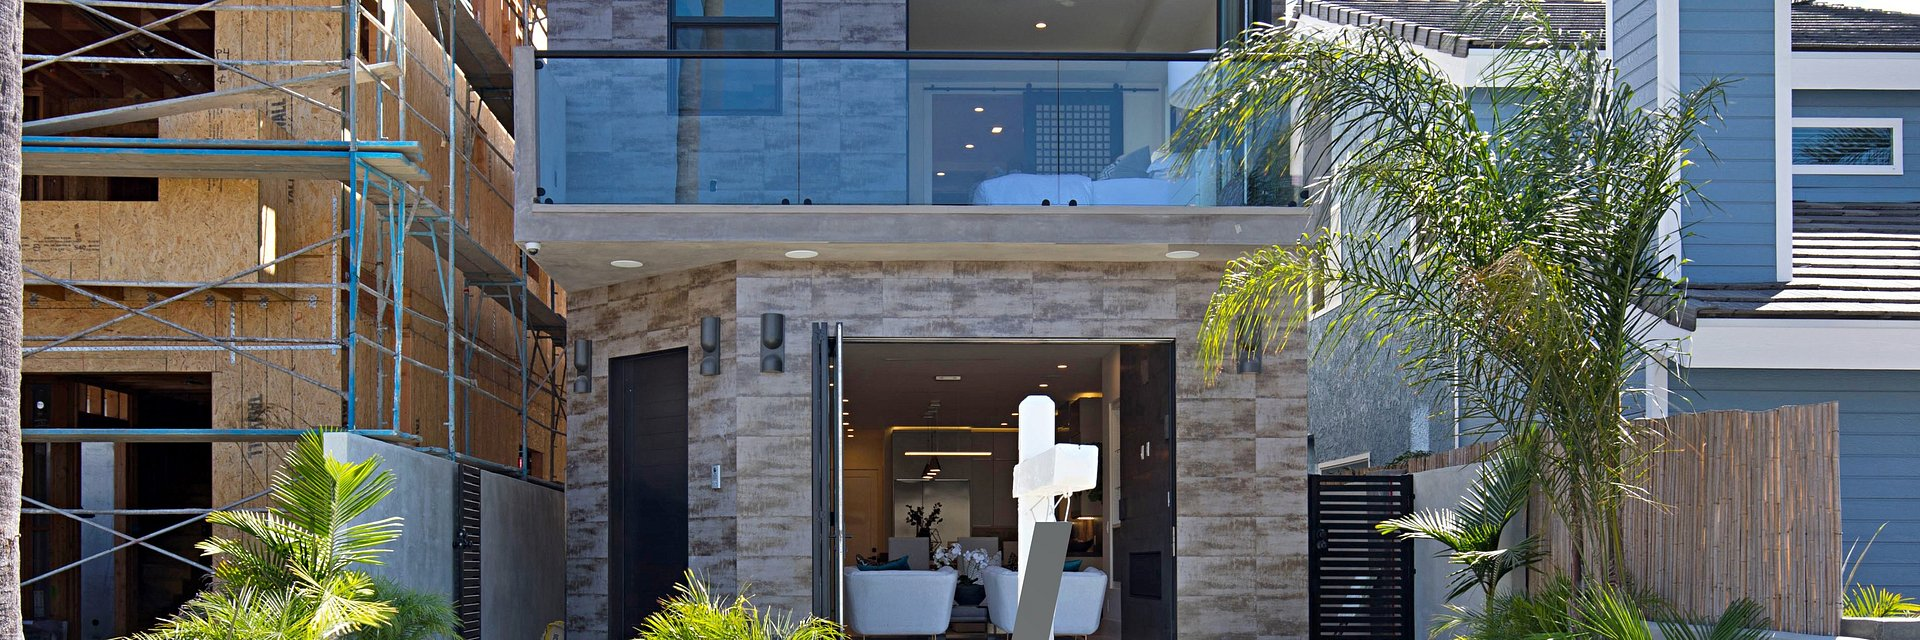 Coldwell Banker Residential Brokerage Lists New Huntington Beach Property for $2.175 Million